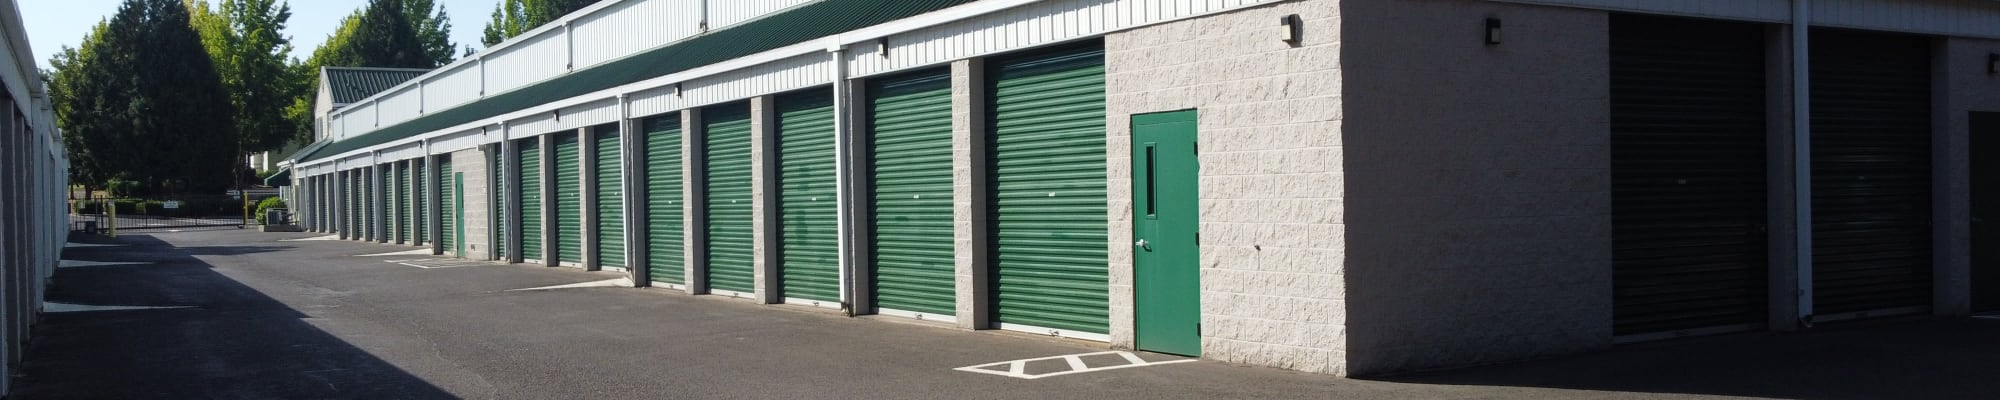 Unit sizes and prices at A Storage Place in Tualatin, Oregon